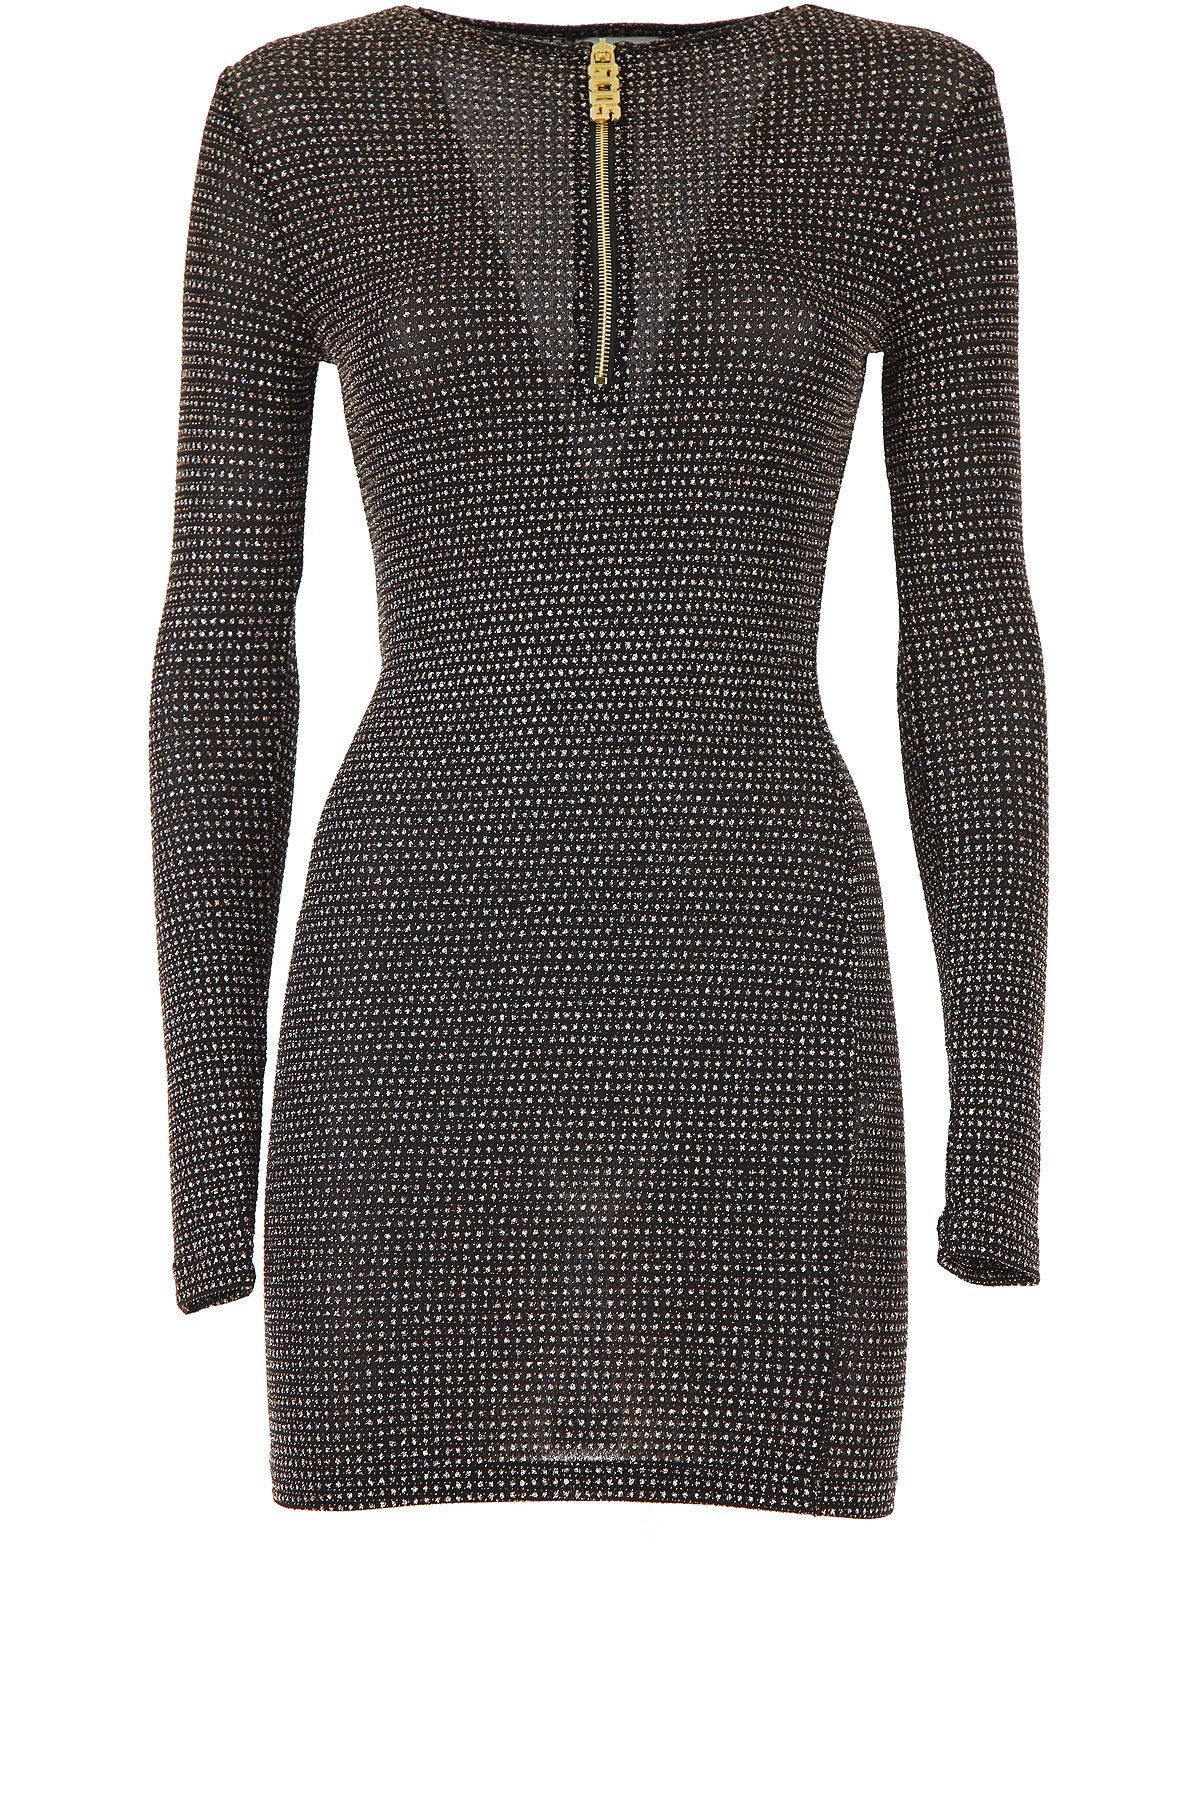 GCDS Dress for Women, Evening Cocktail Party On Sale, Black, polyamide, 2019, 4 6